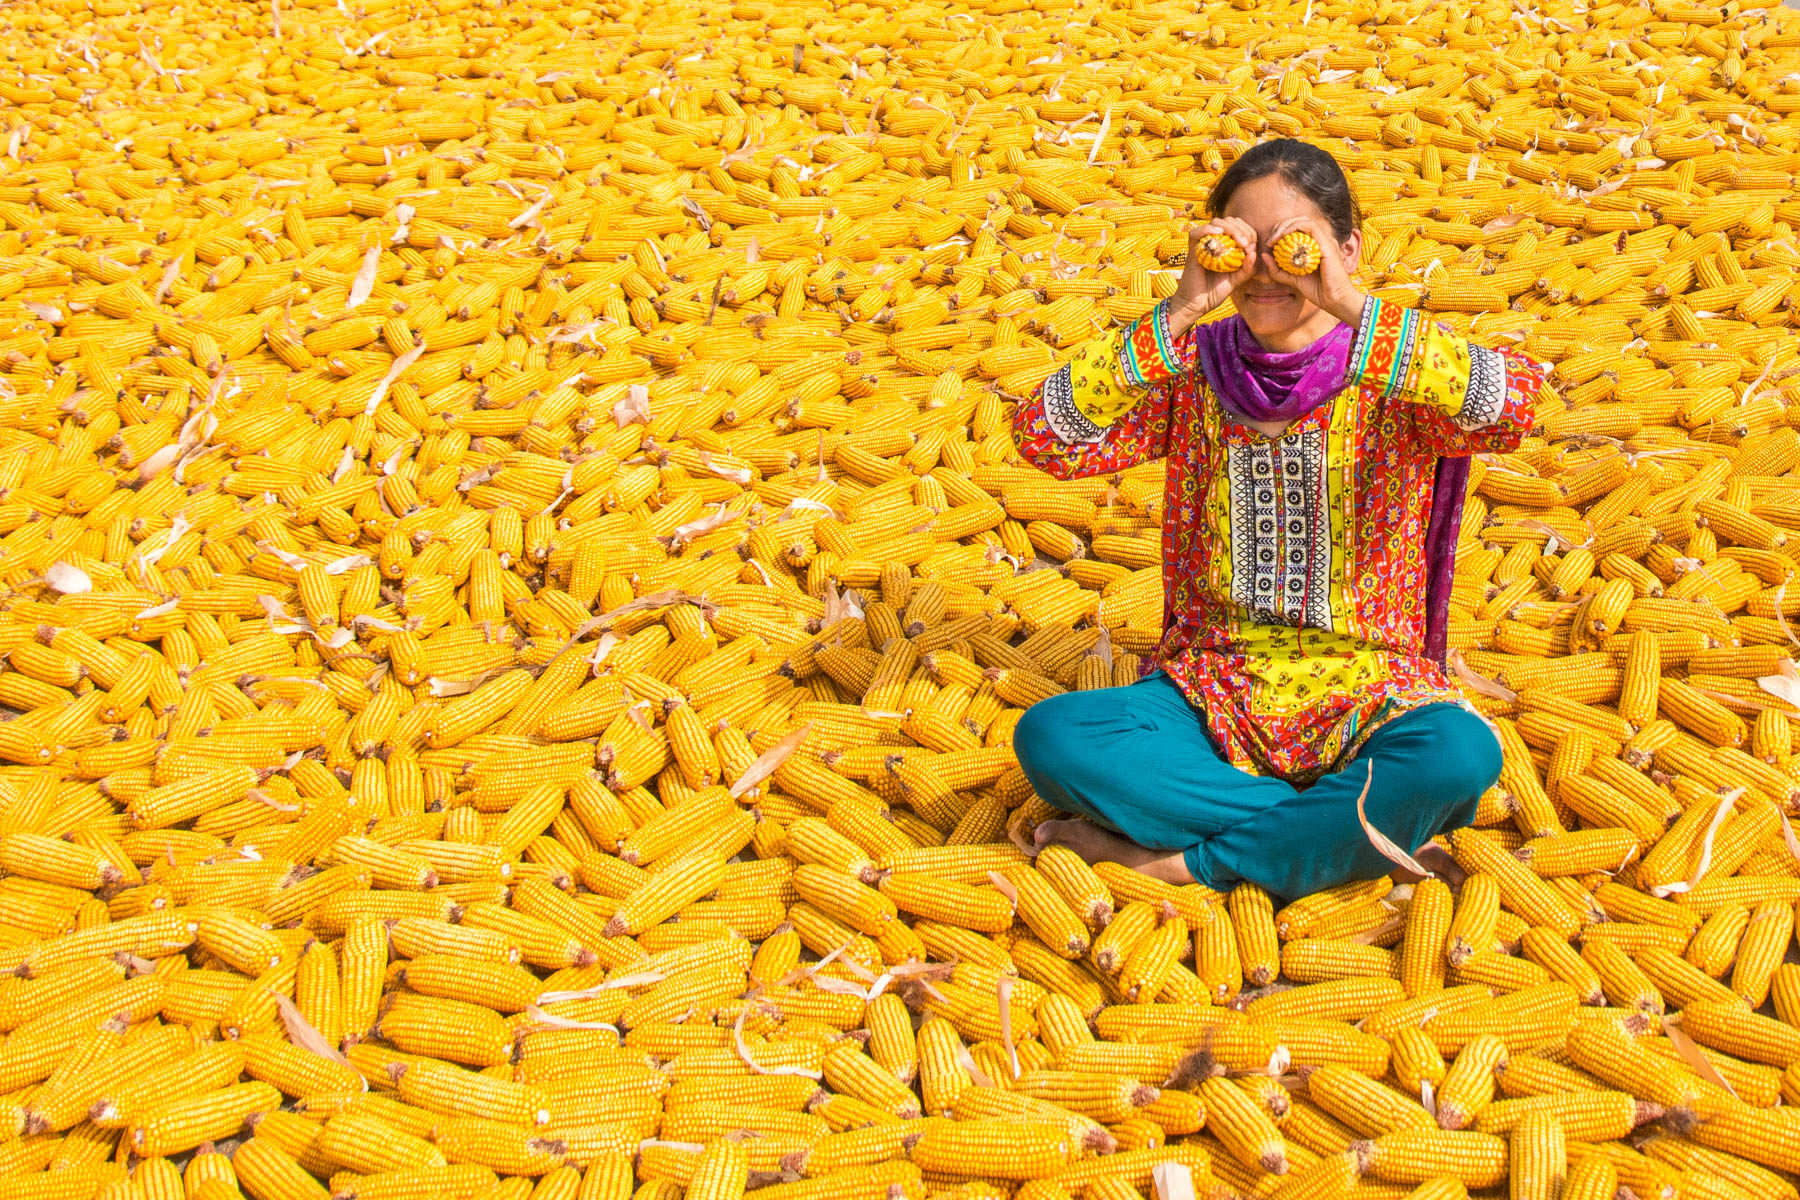 A girl sitting in a field of corn in Pakistan